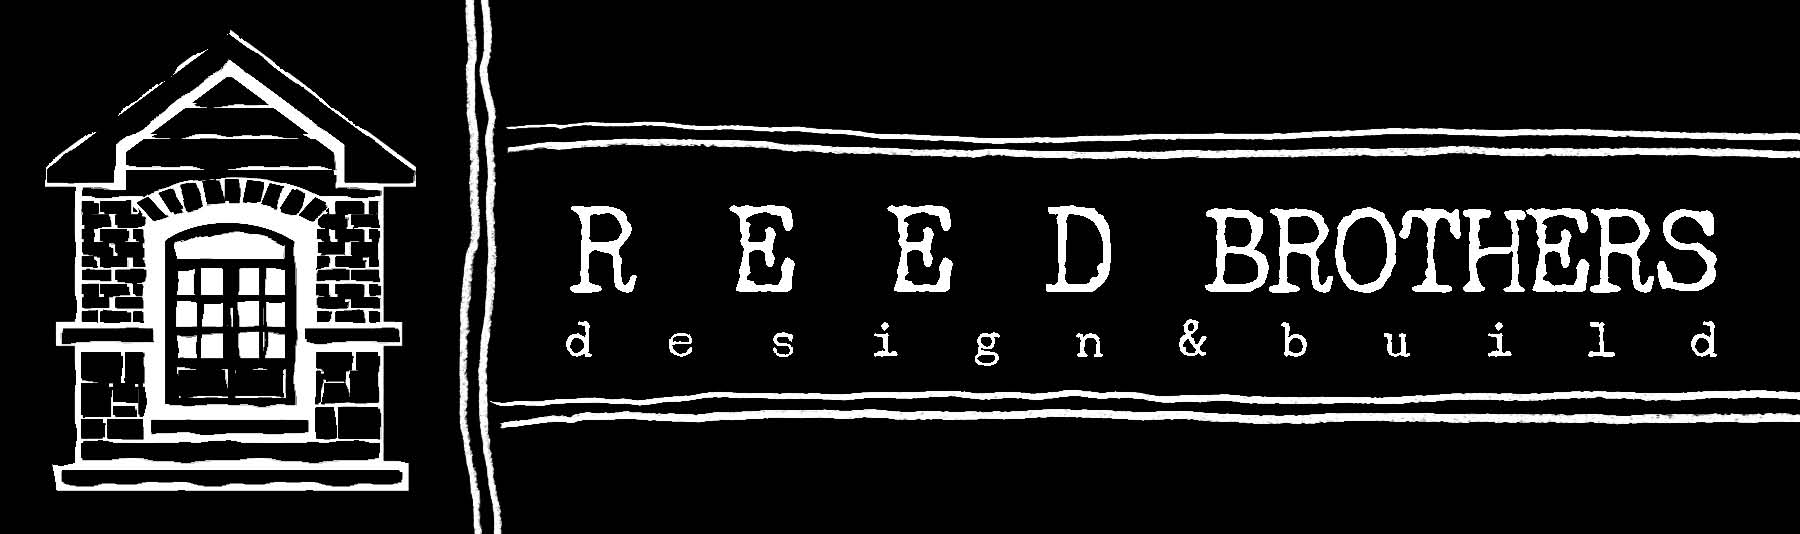 REED BROTHERS design & build logo